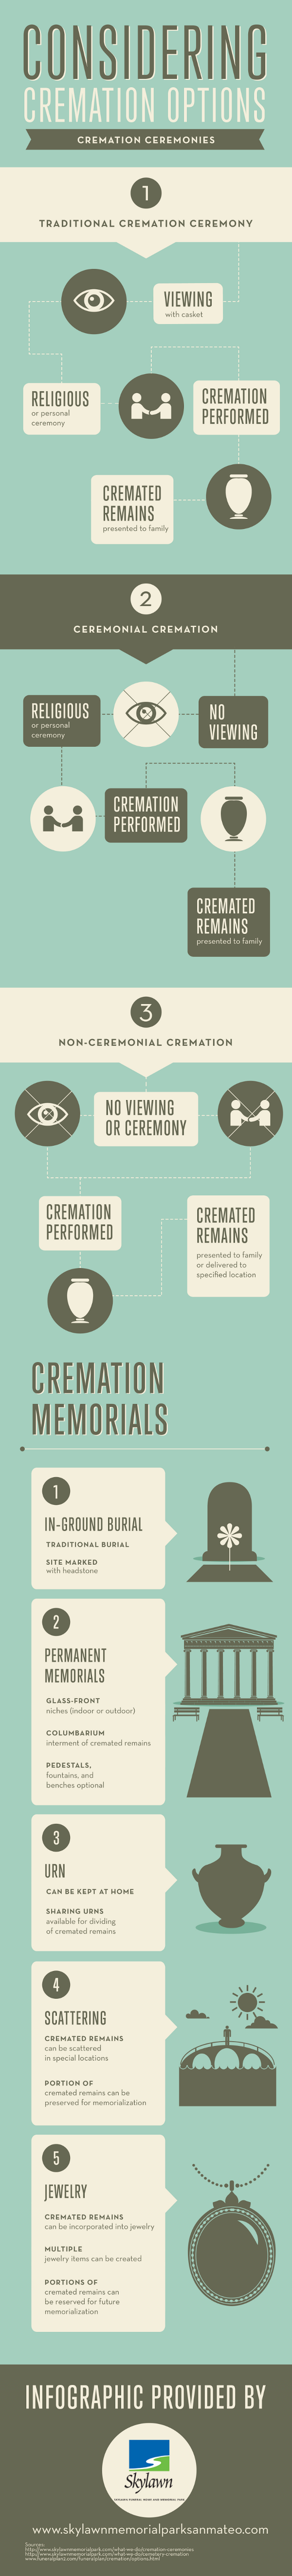 Funeral Cremation Facts